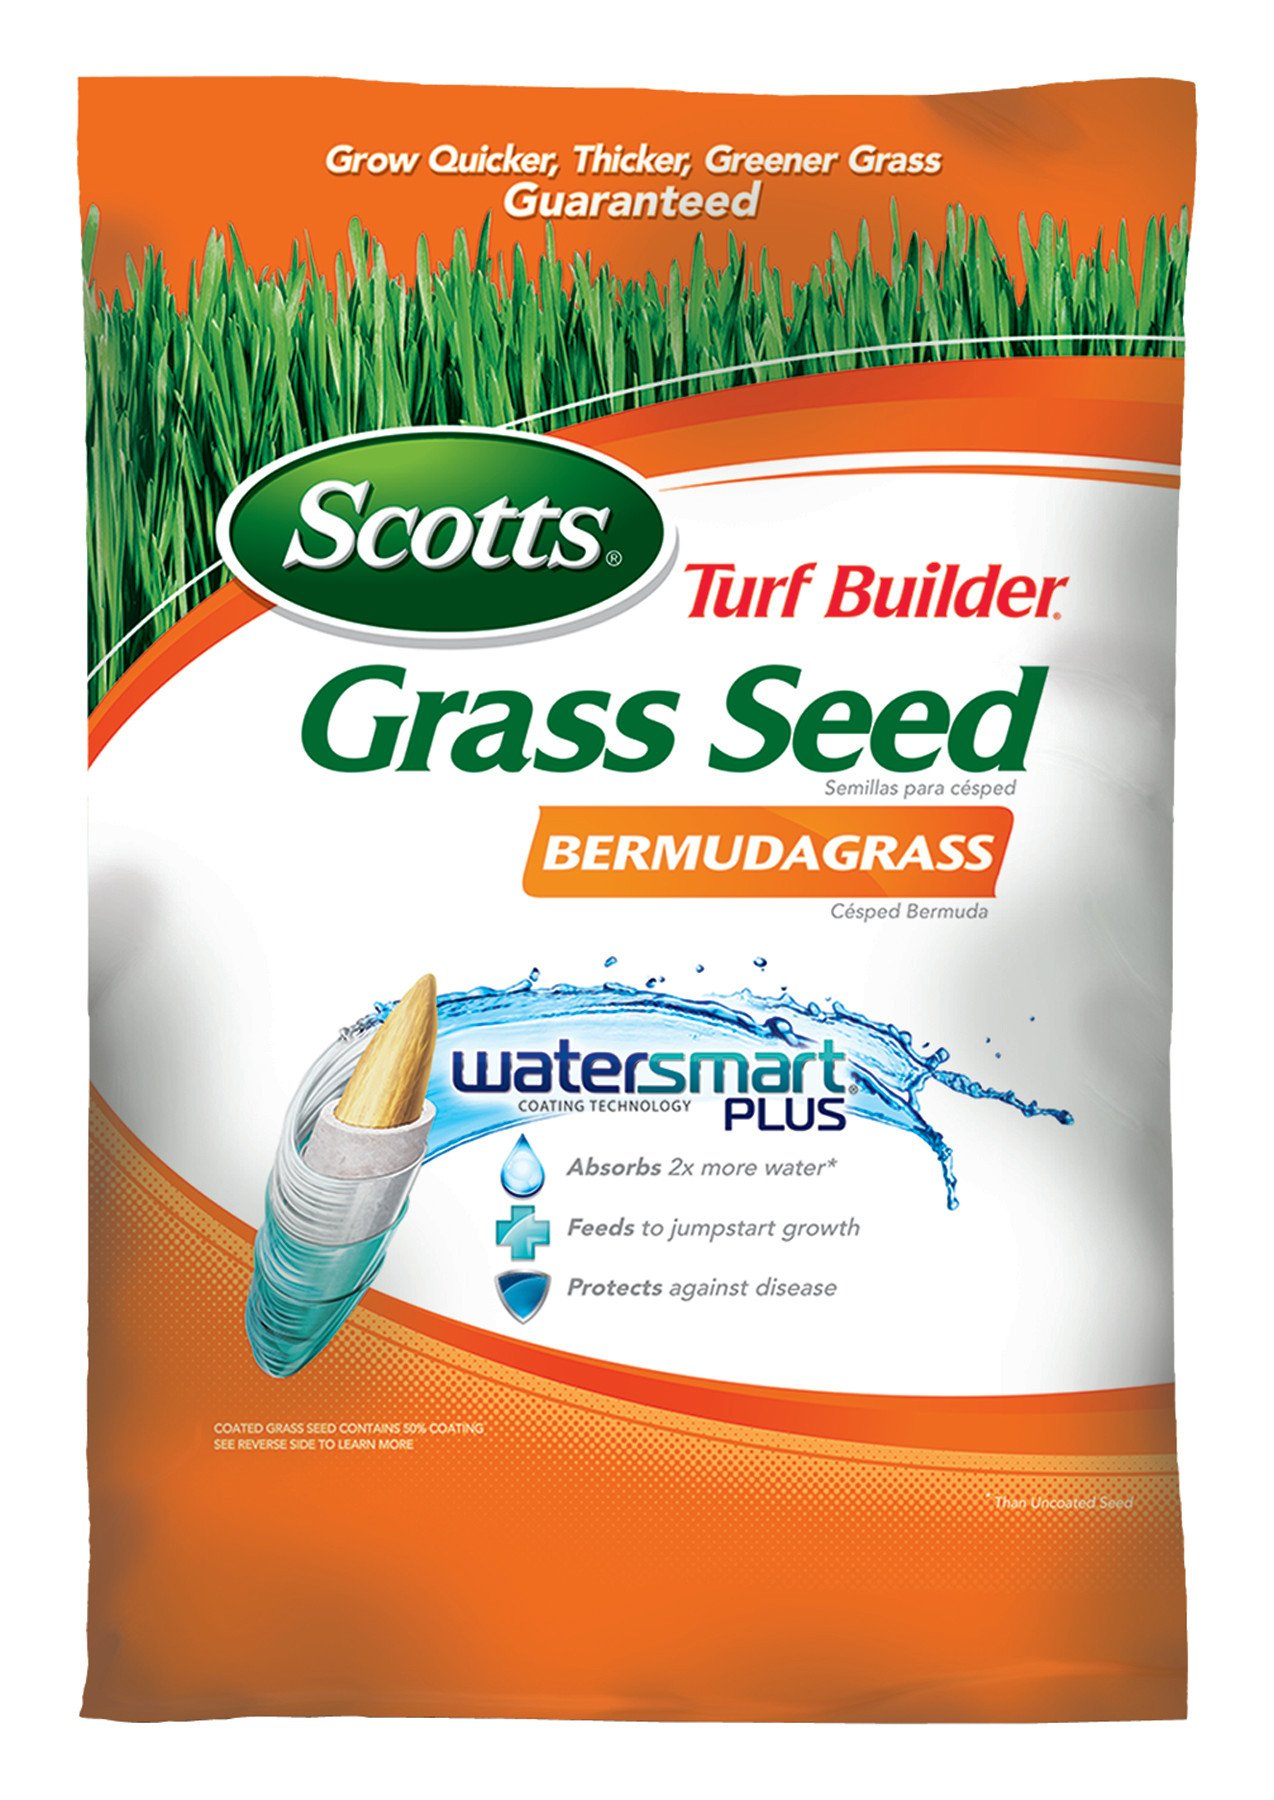 Scotts Turf Builder Grass Seed - Bermudagrass 15-Pound (Sold In Select Southe.. 6